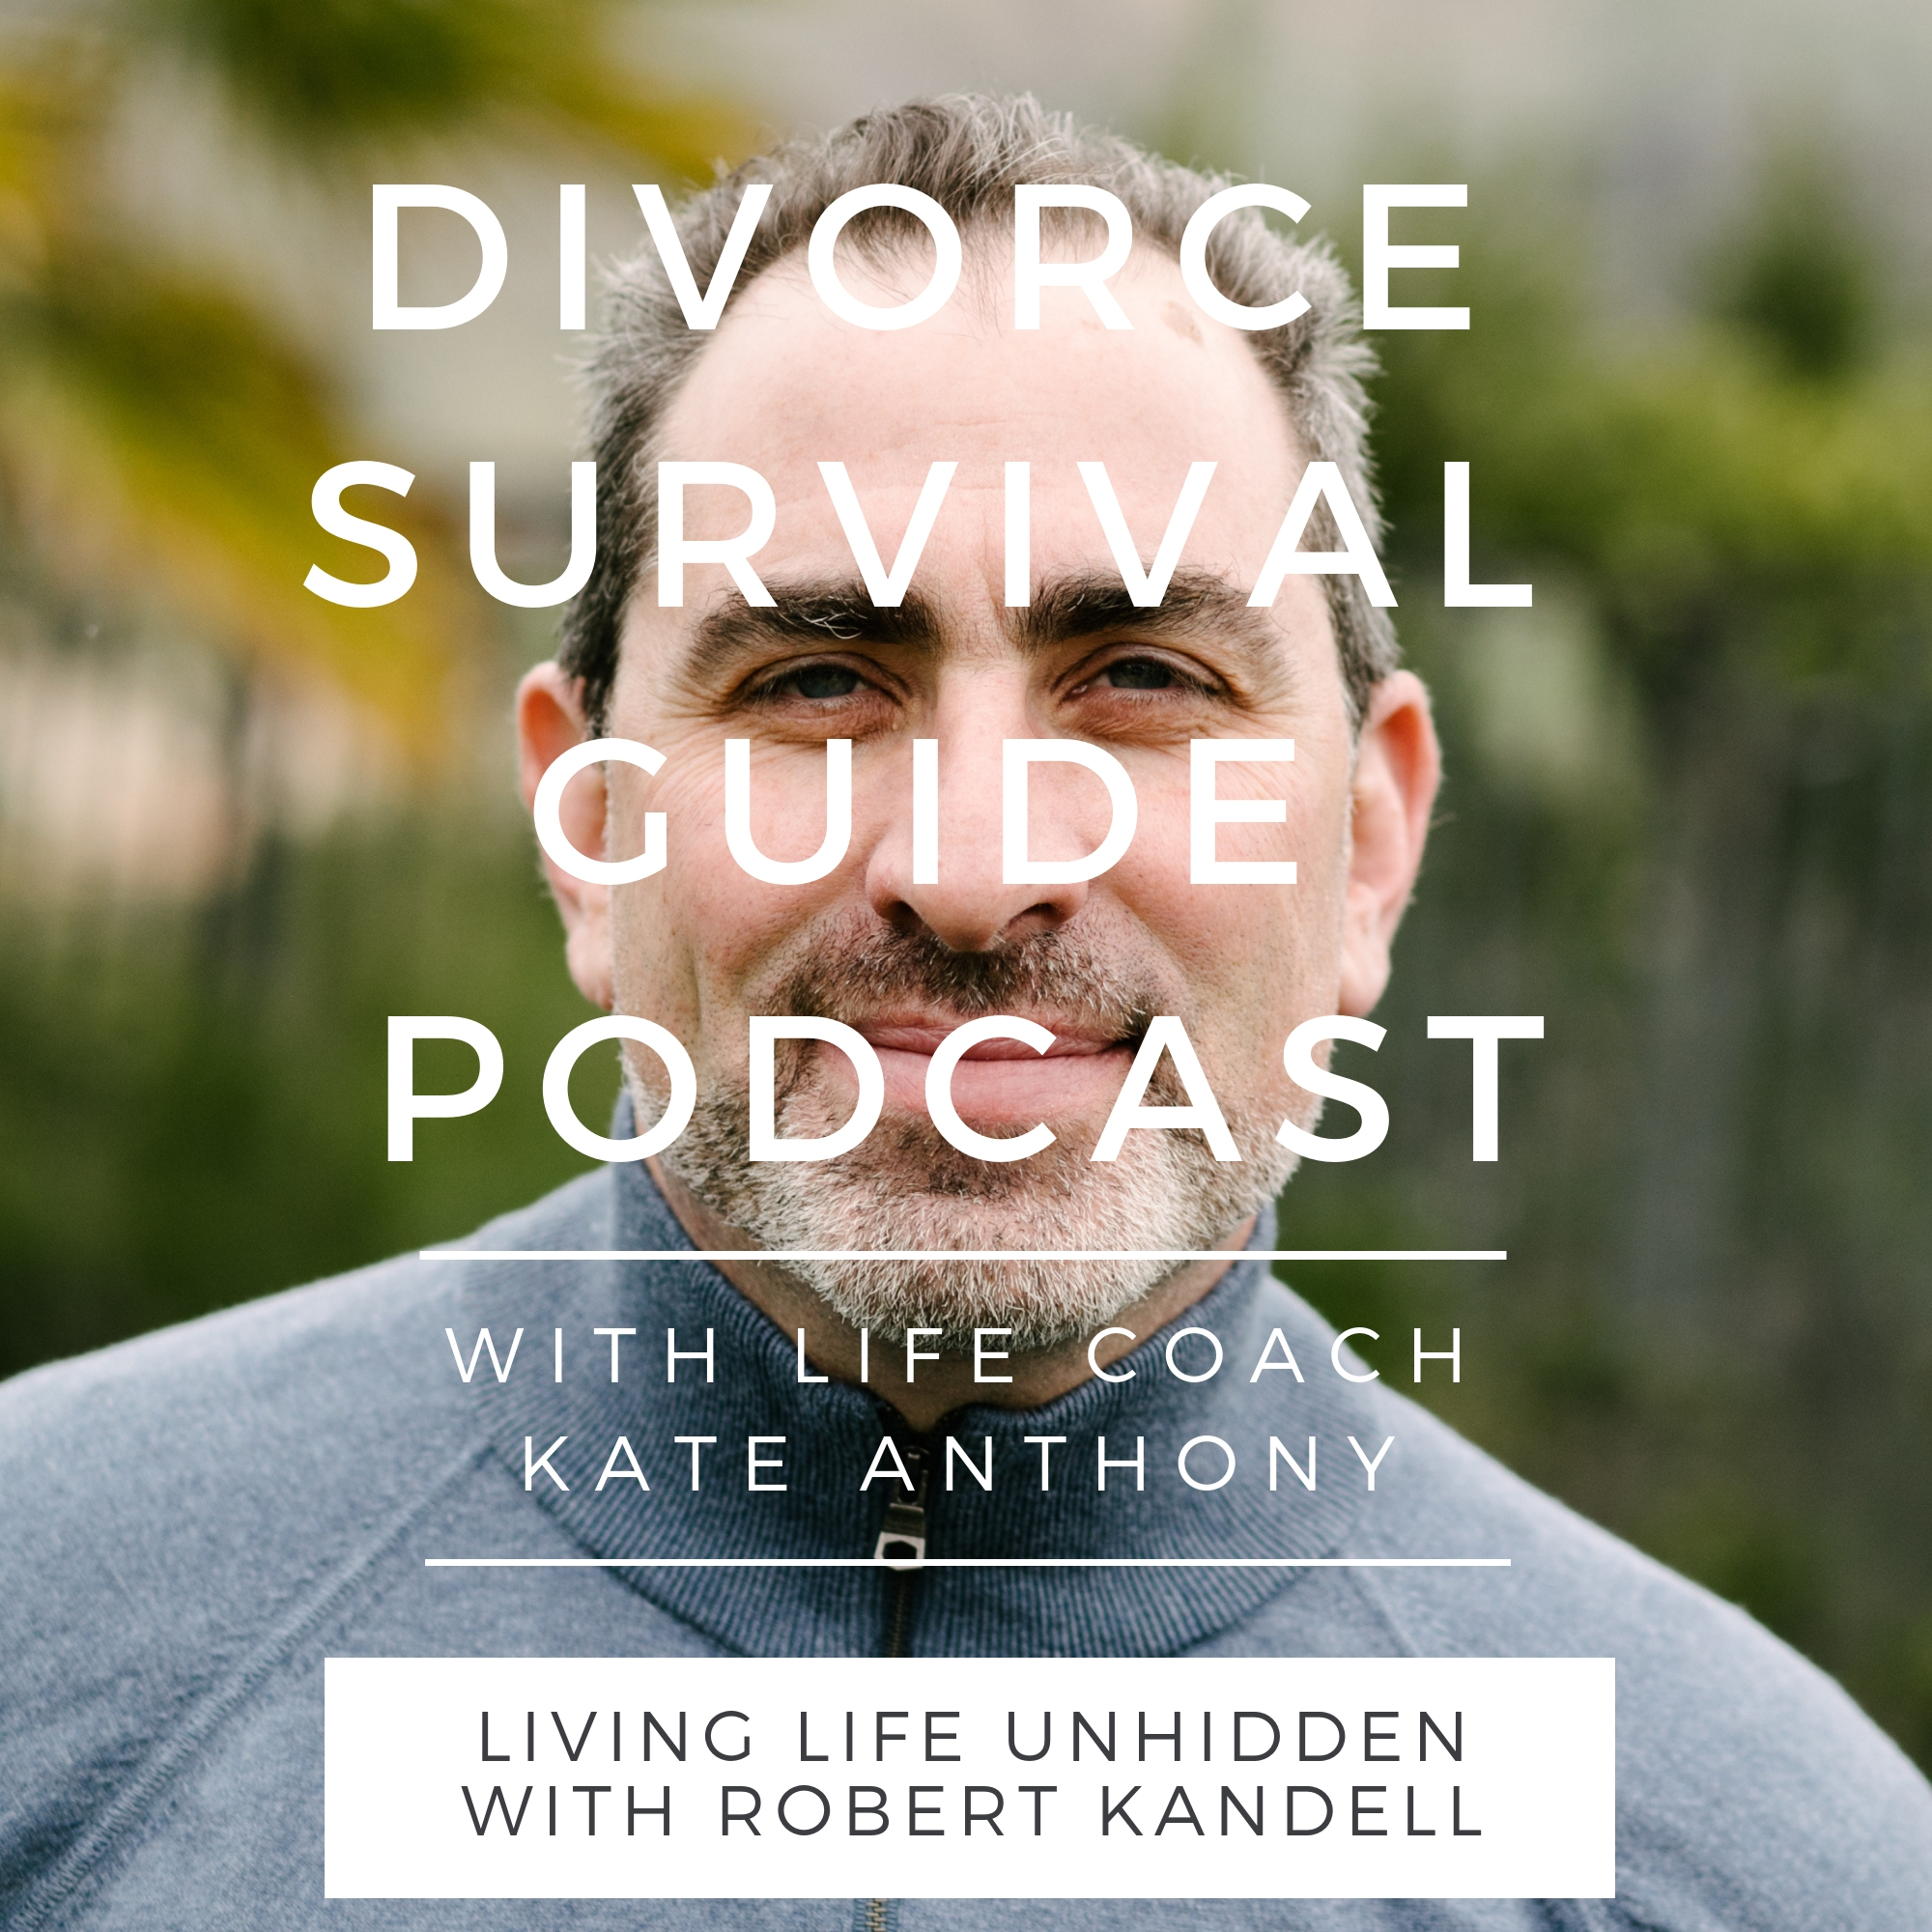 The Divorce Survival Guide Podcast - Living Life Unhidden with Robert Kandell